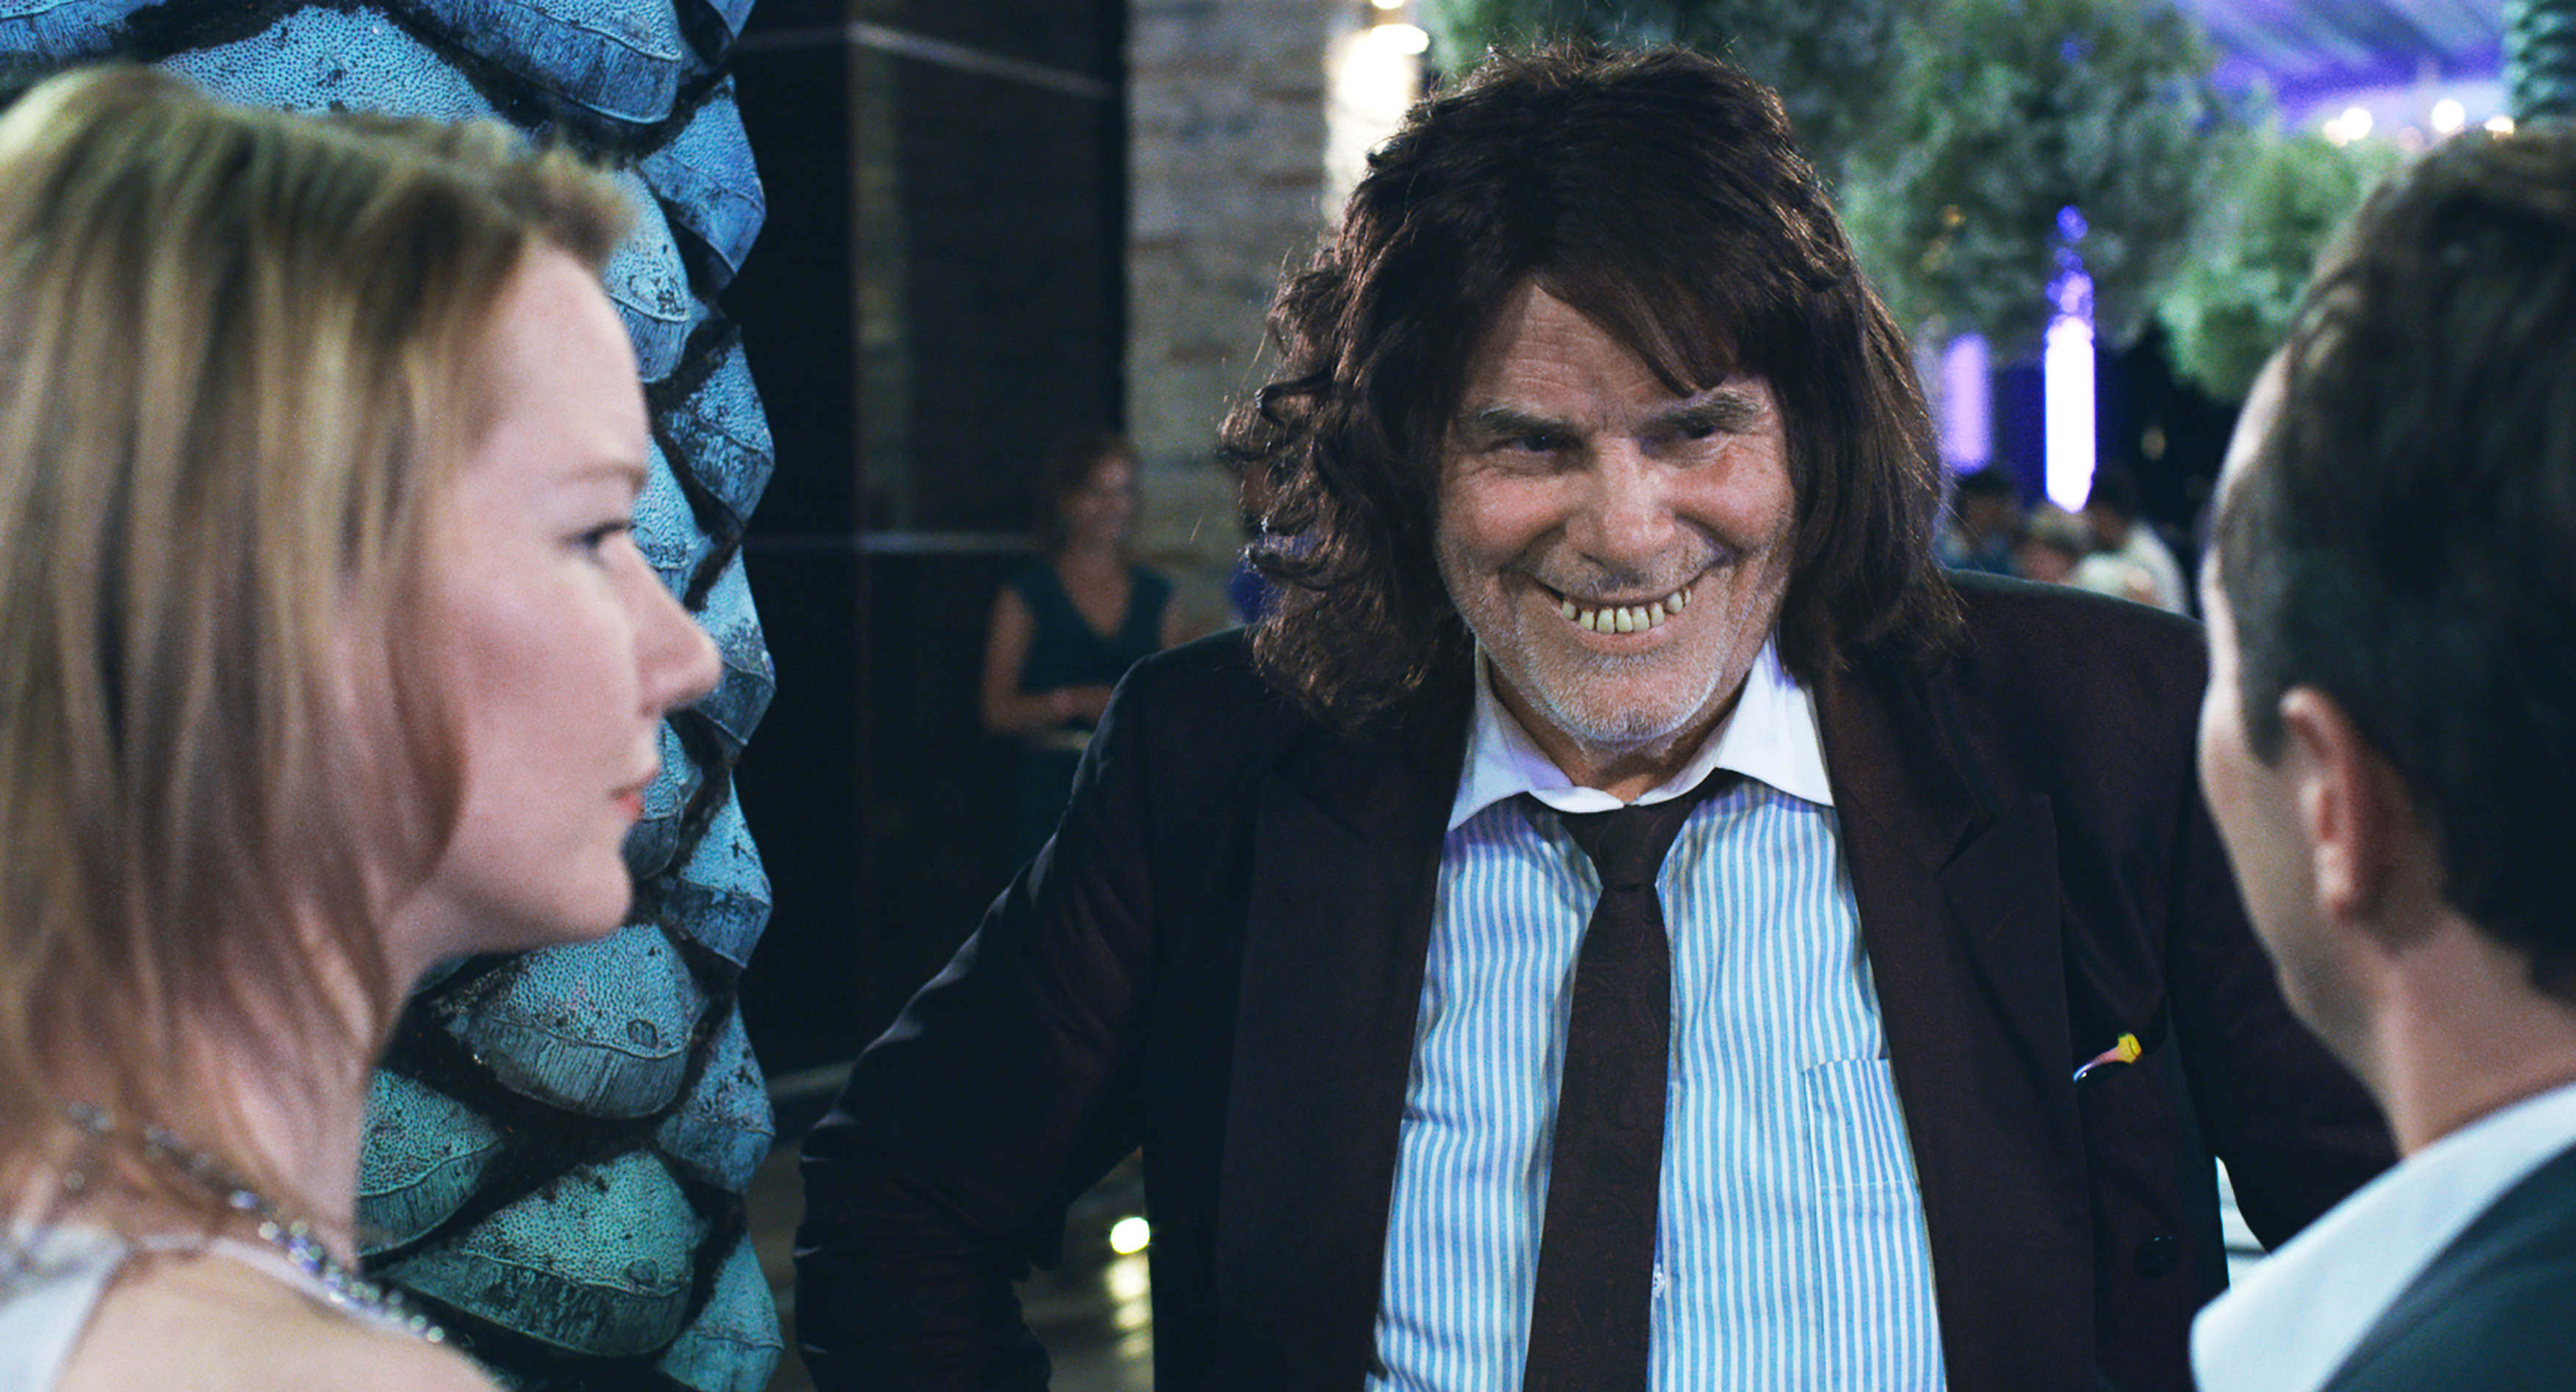 Toni Erdmann: Growing a Relationship